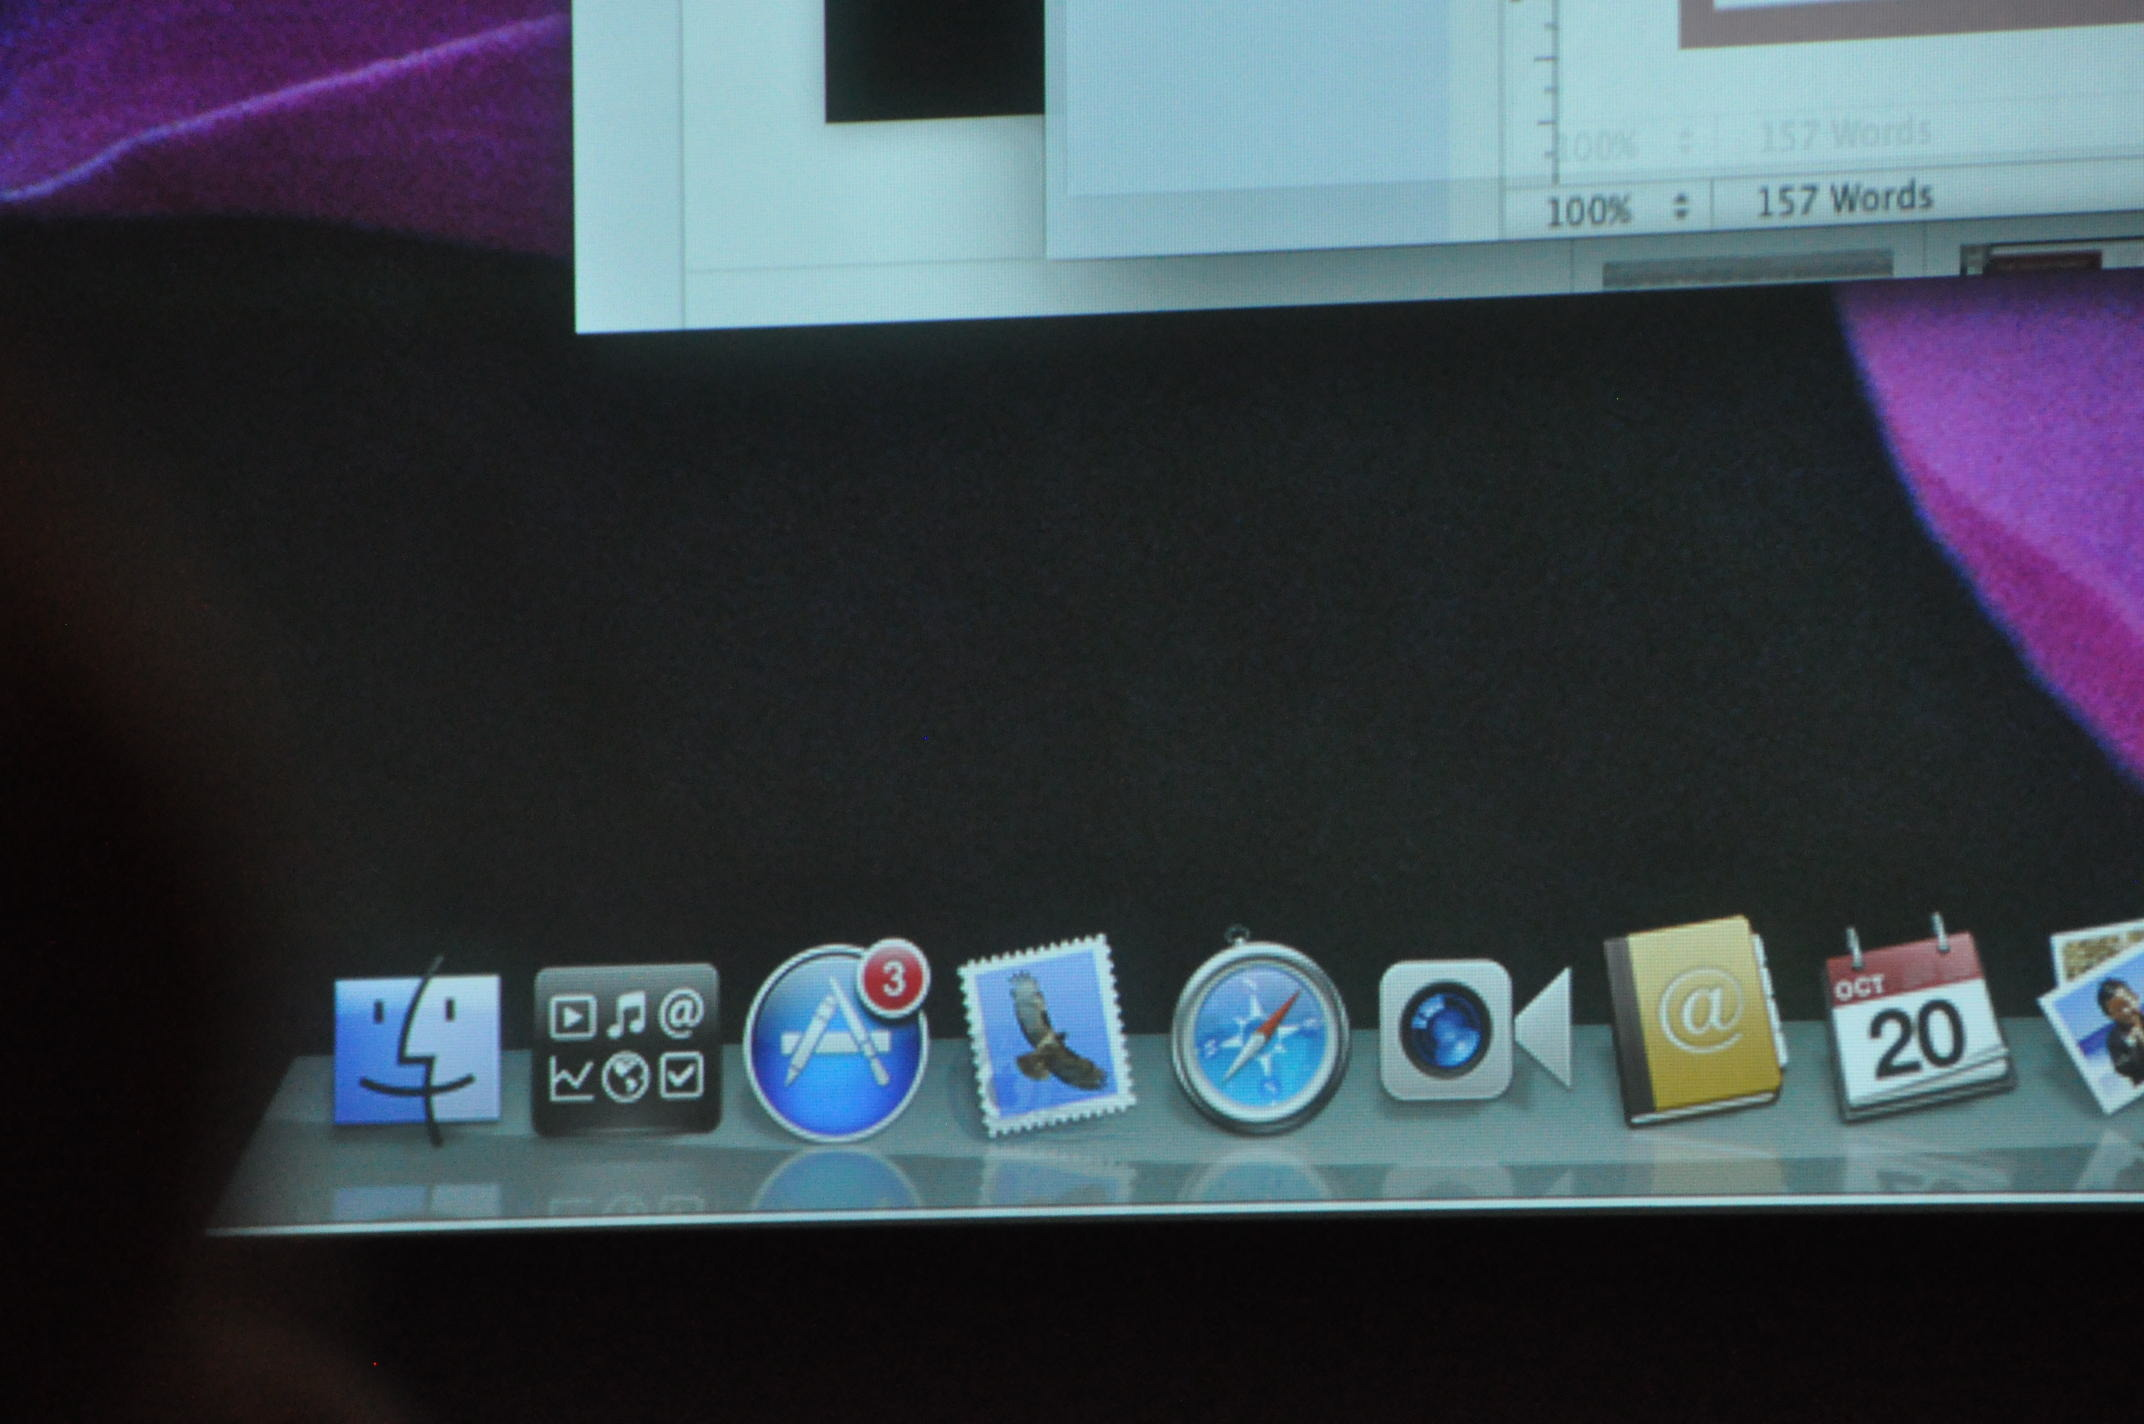 App Store icon in Mac dock